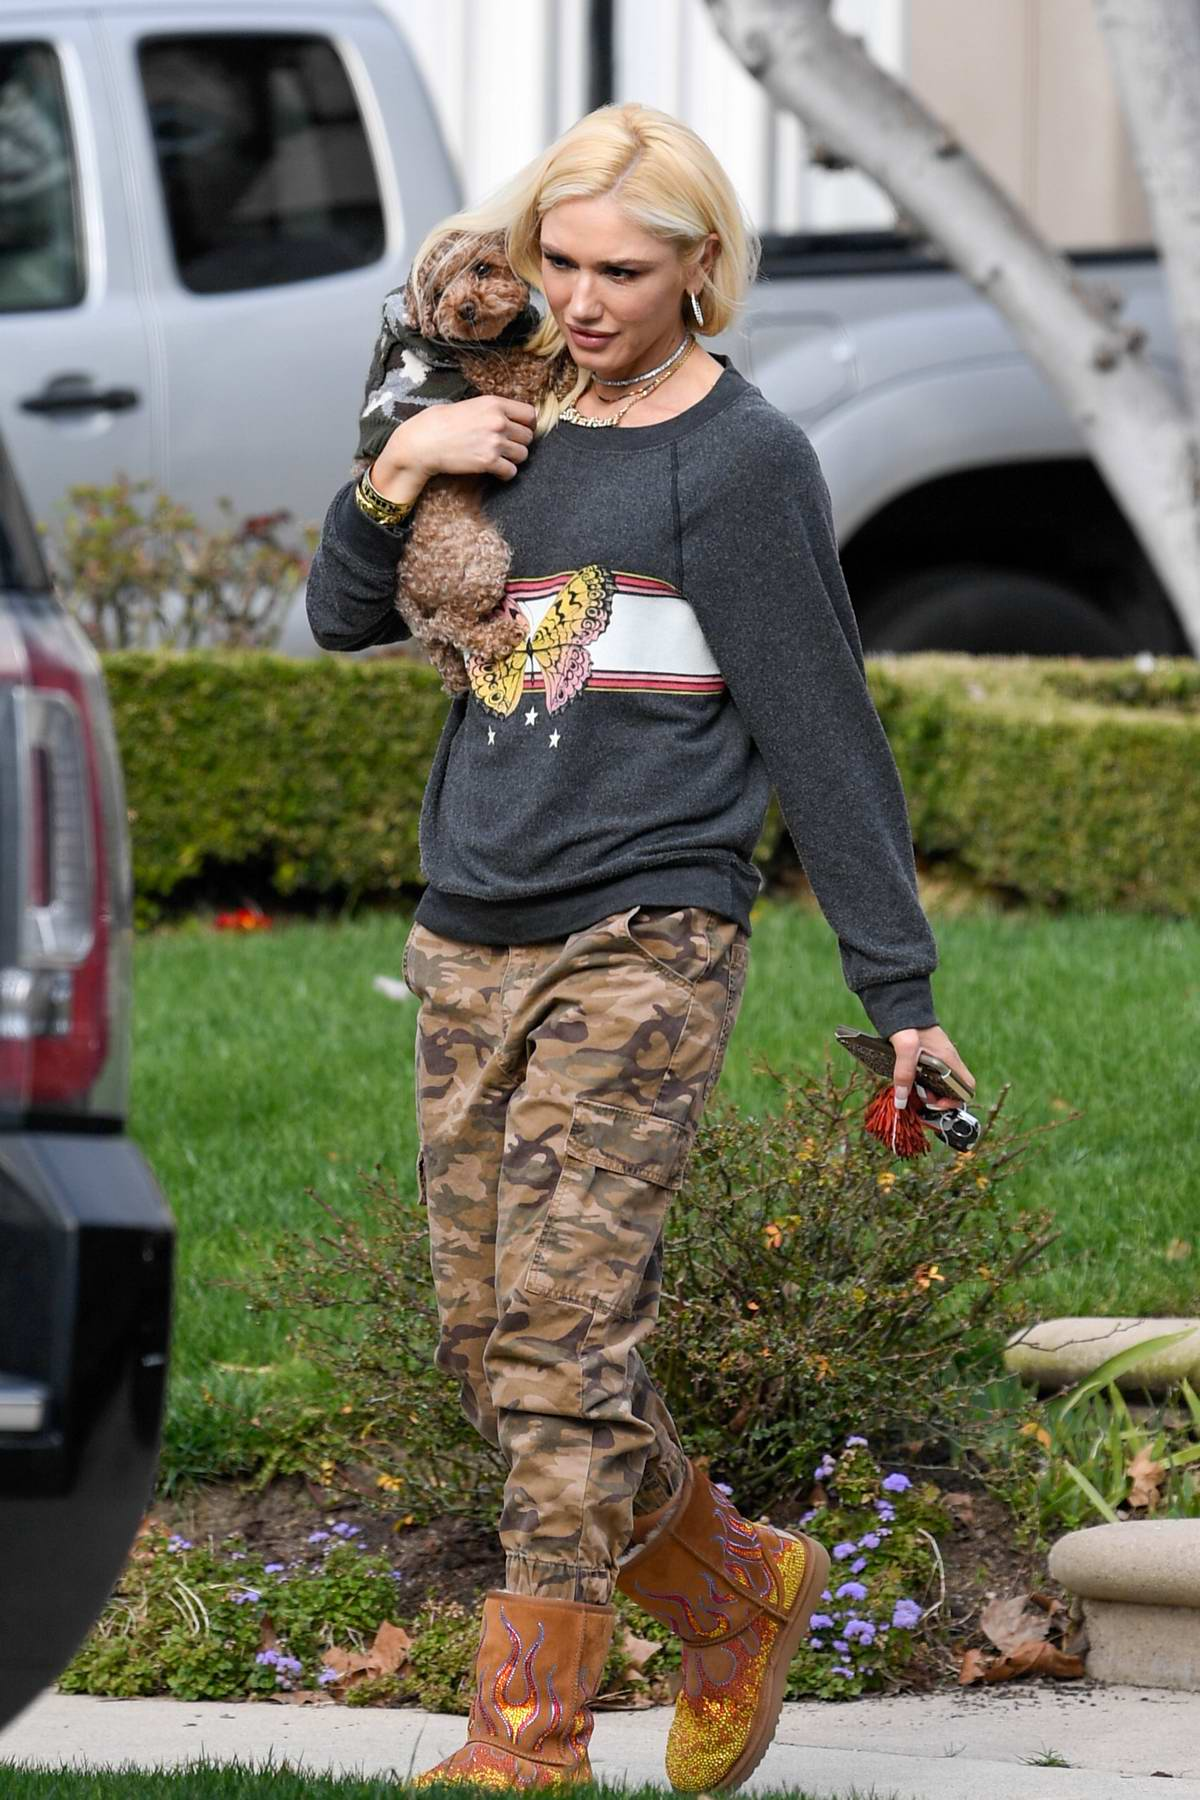 Gwen Stefani cradles her dog while out in Los Angeles